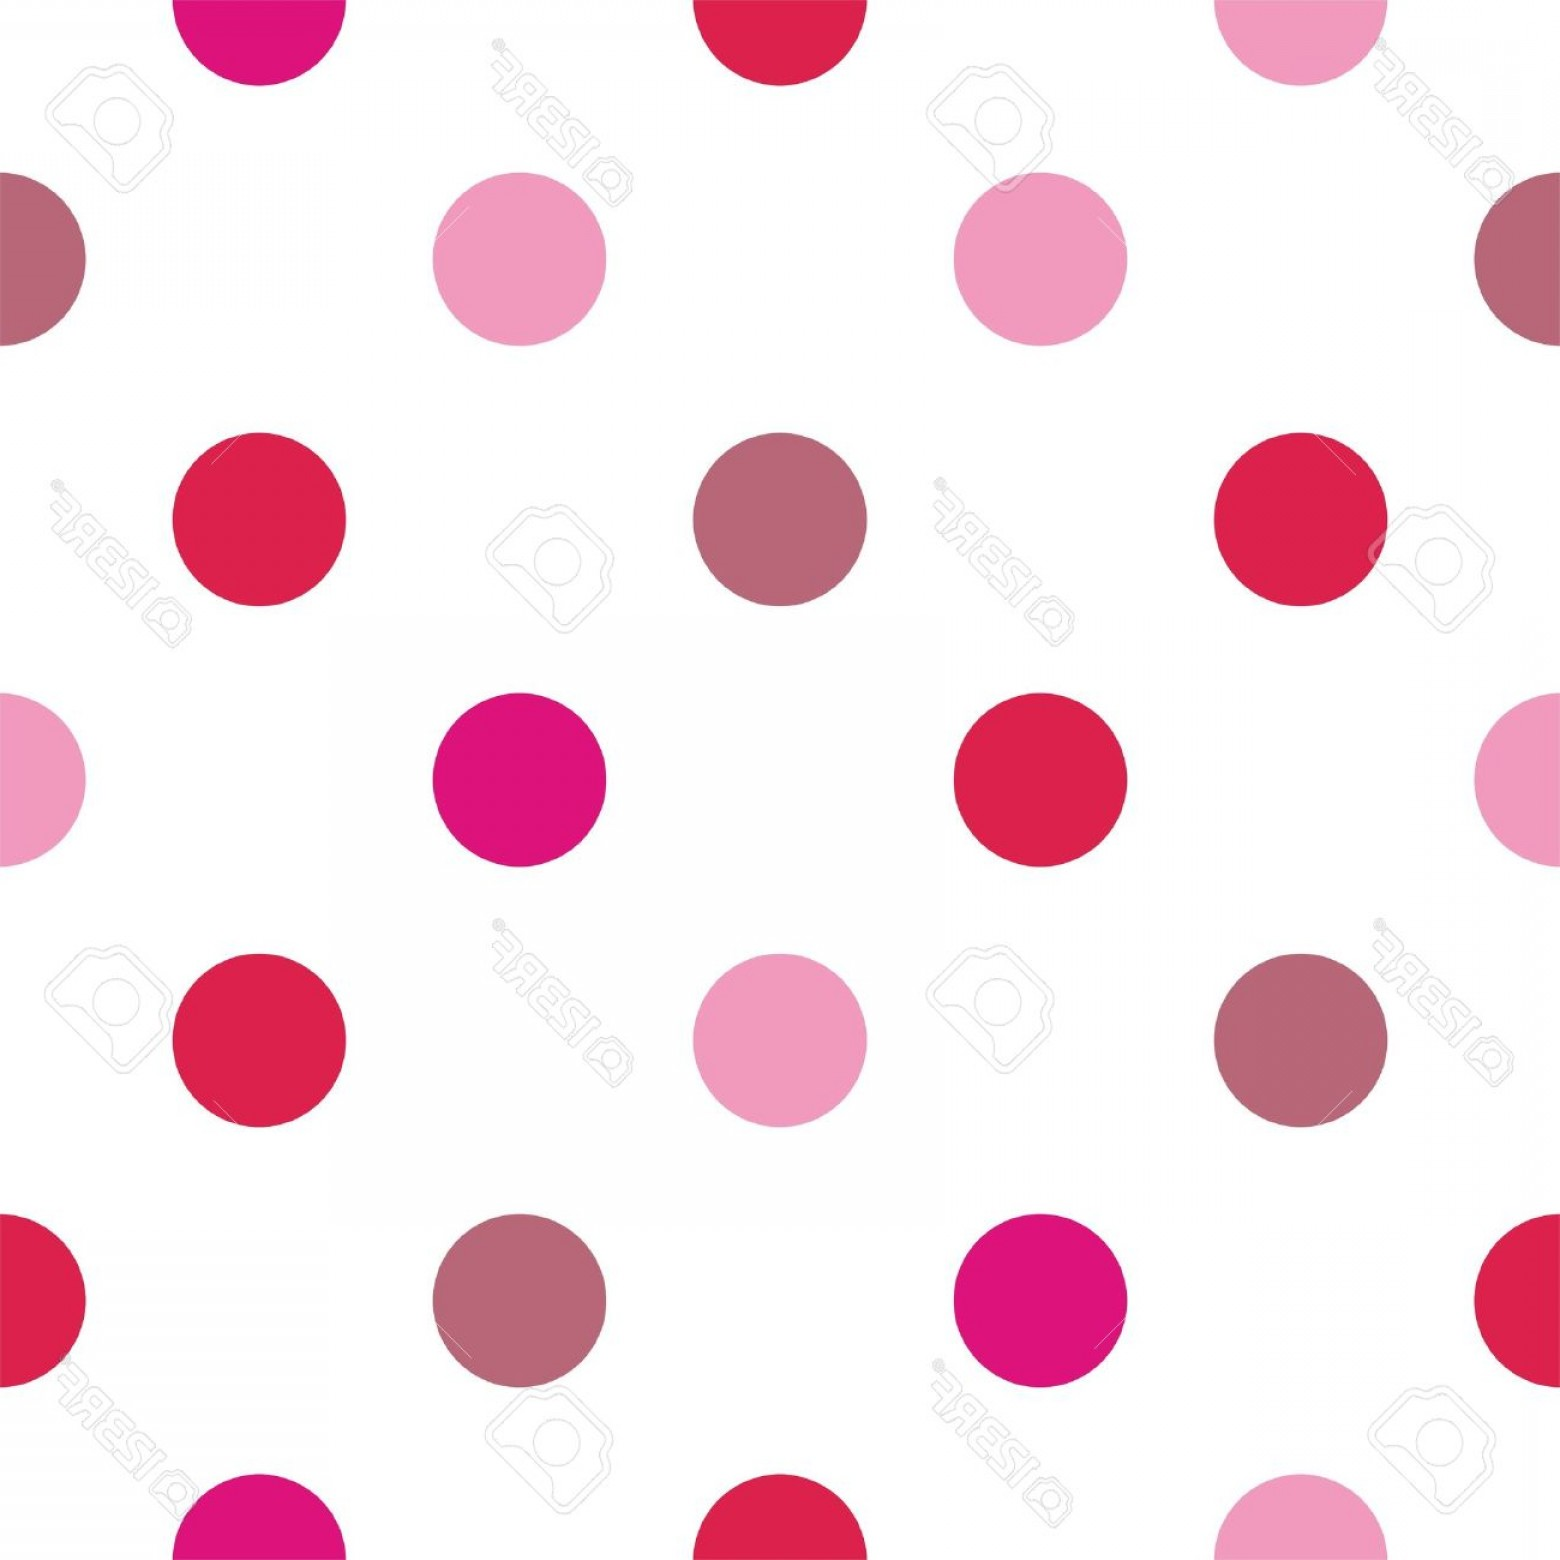 Polka Dot Background Vector Y: Photoseamless Vector Pattern Pink And Red Polka Dots On White Background